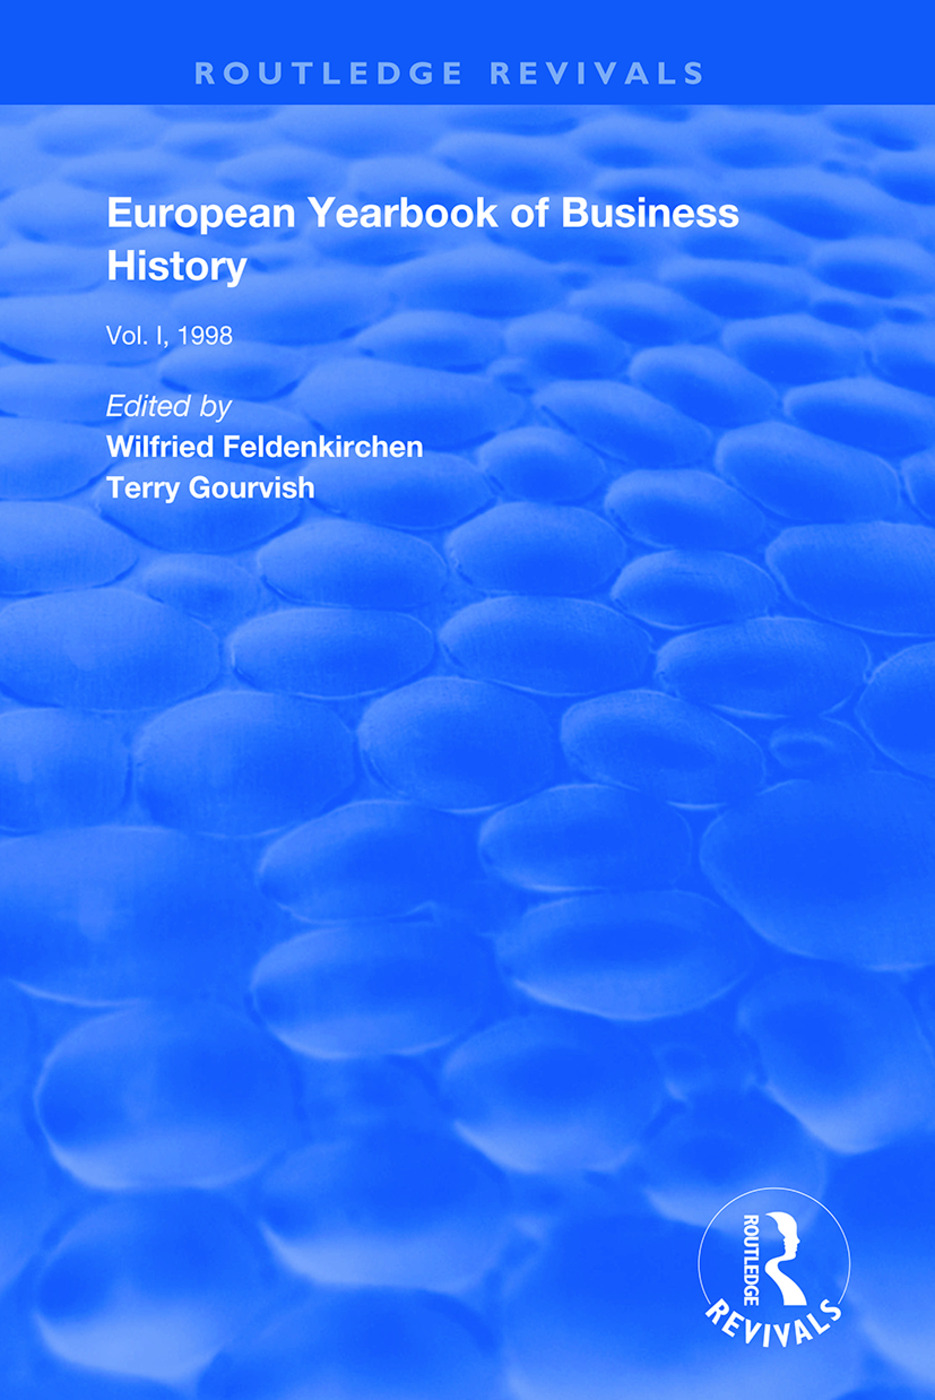 European Yearbook of Business History: Volume 1, 1st Edition (Hardback) book cover